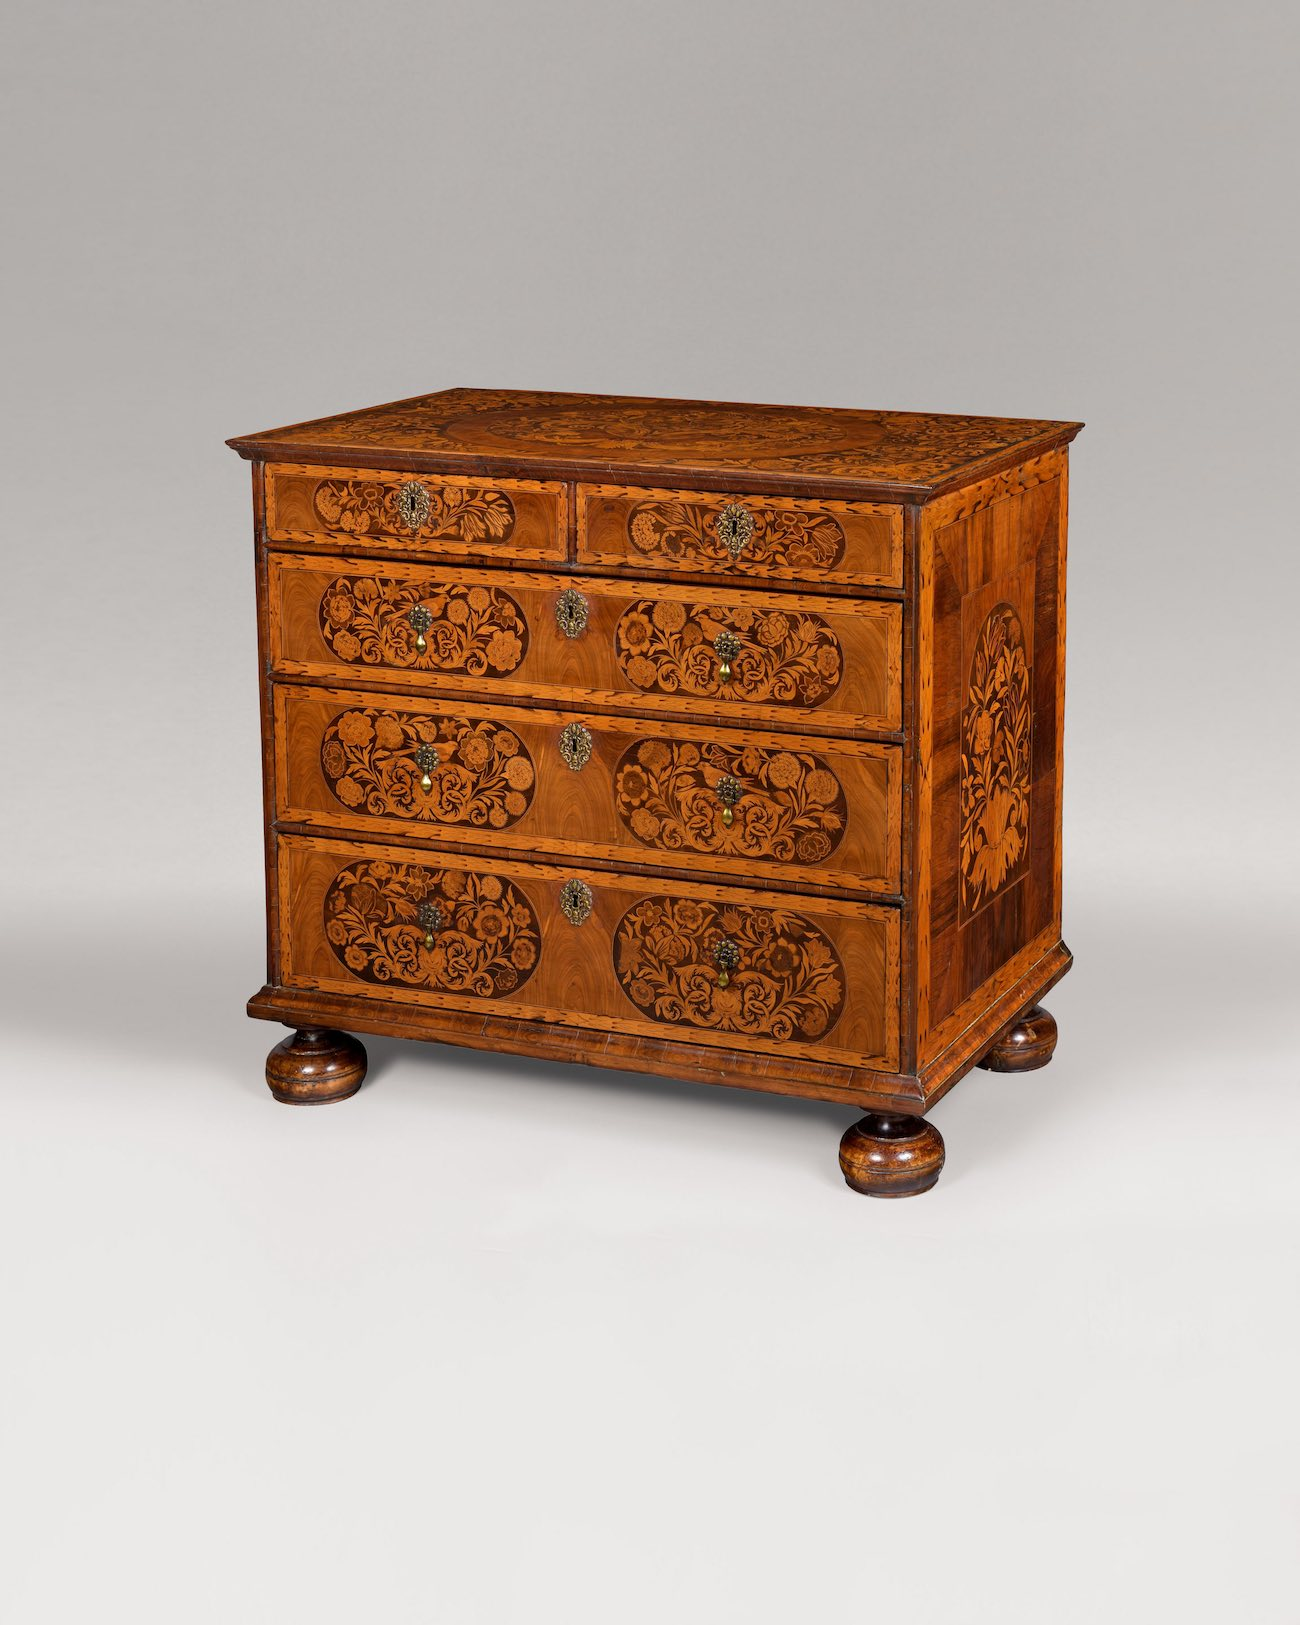 WILLIAM & MARY PERIOD MARQUETRY CHEST